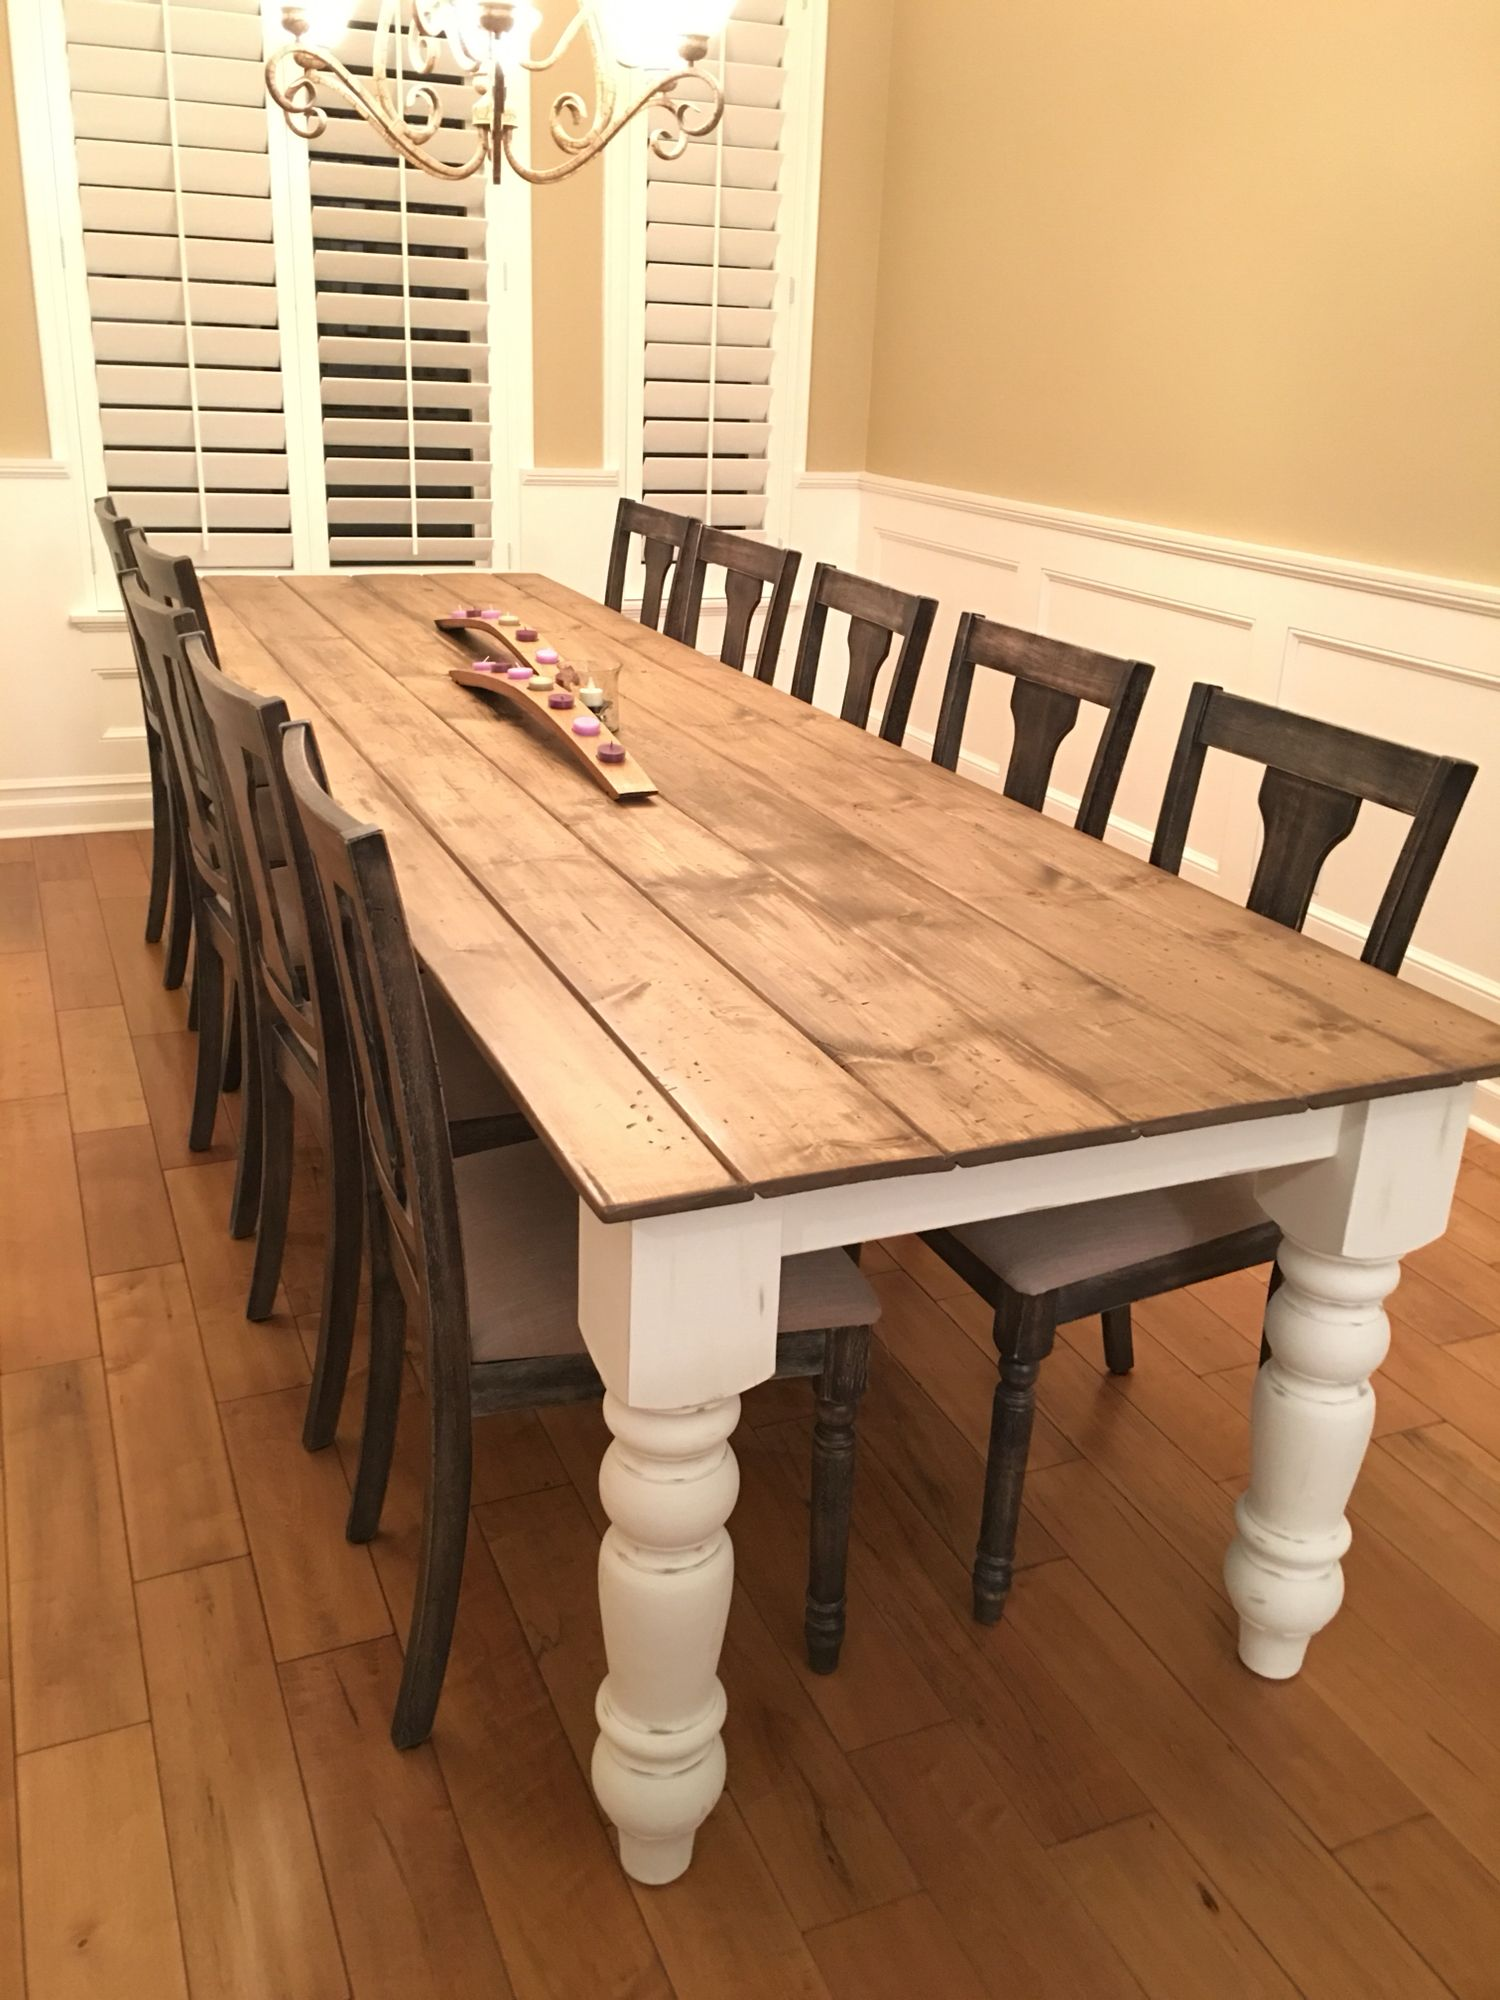 DIY FARMHOUSE TABLE My Husband Made 10 Foot 8 Inch Farmhouse Table Top